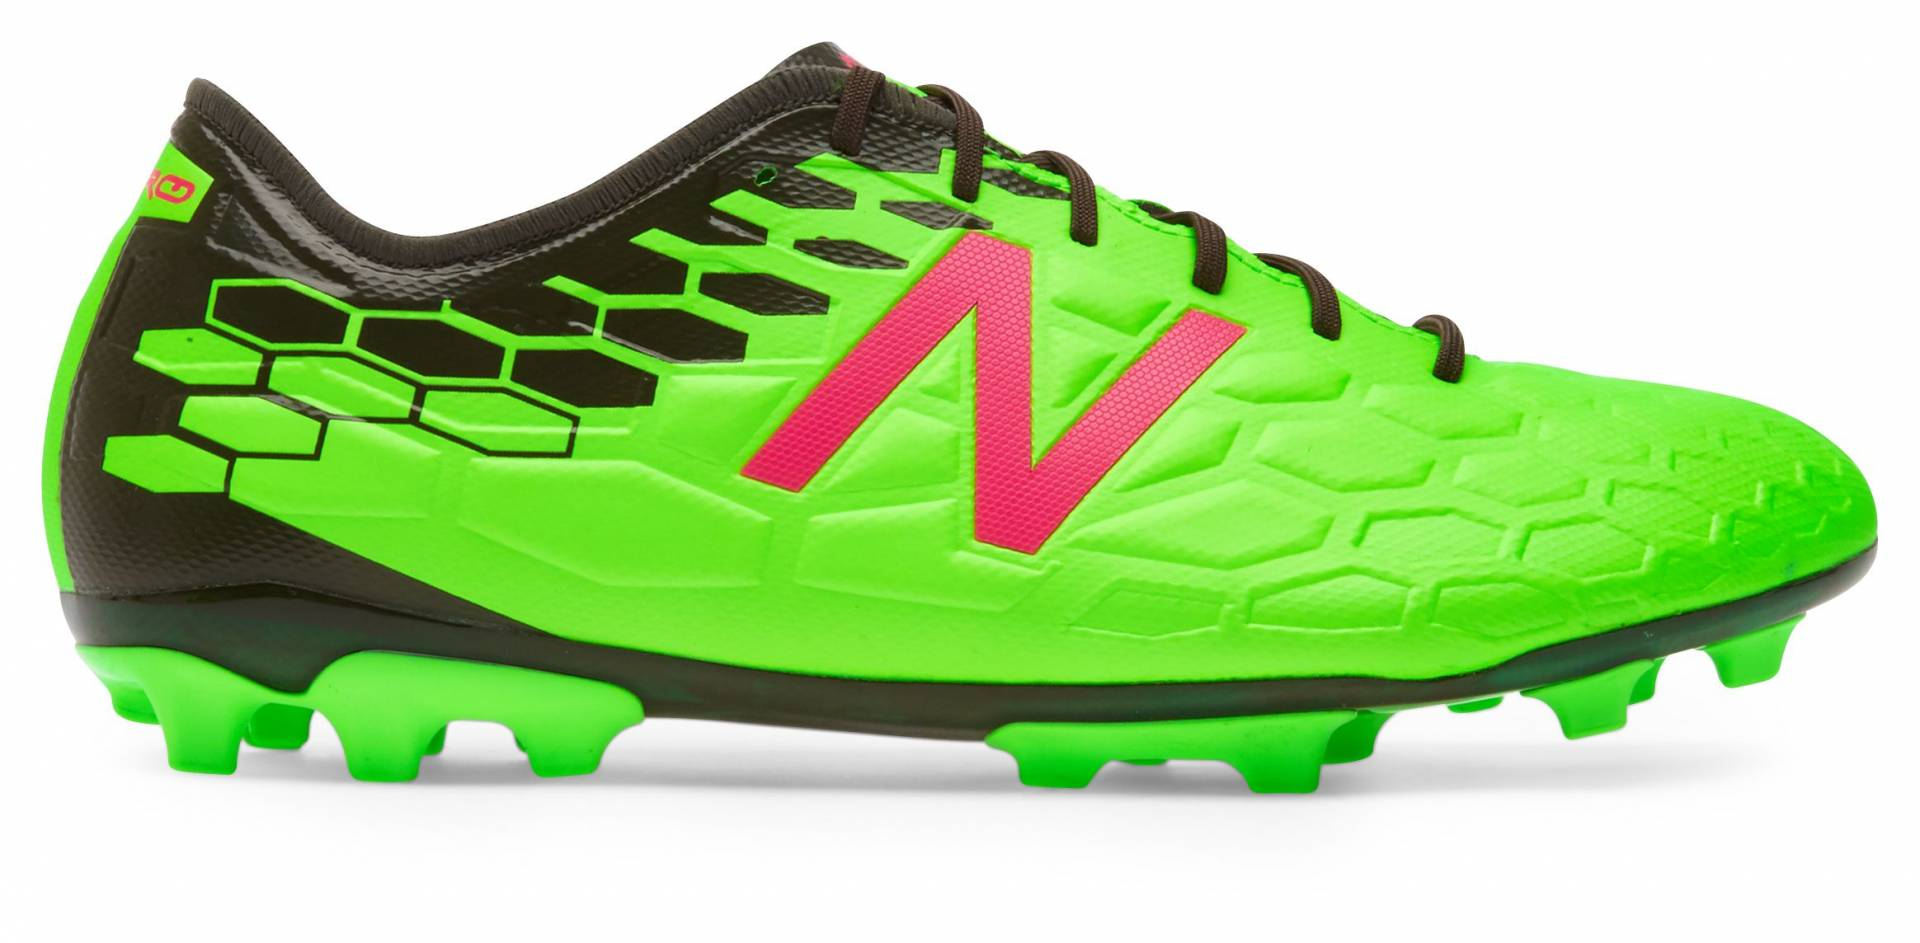 Visaro 2.0 Pro AG de Energy Lime with Military Dark Triumph & Alpha Pink